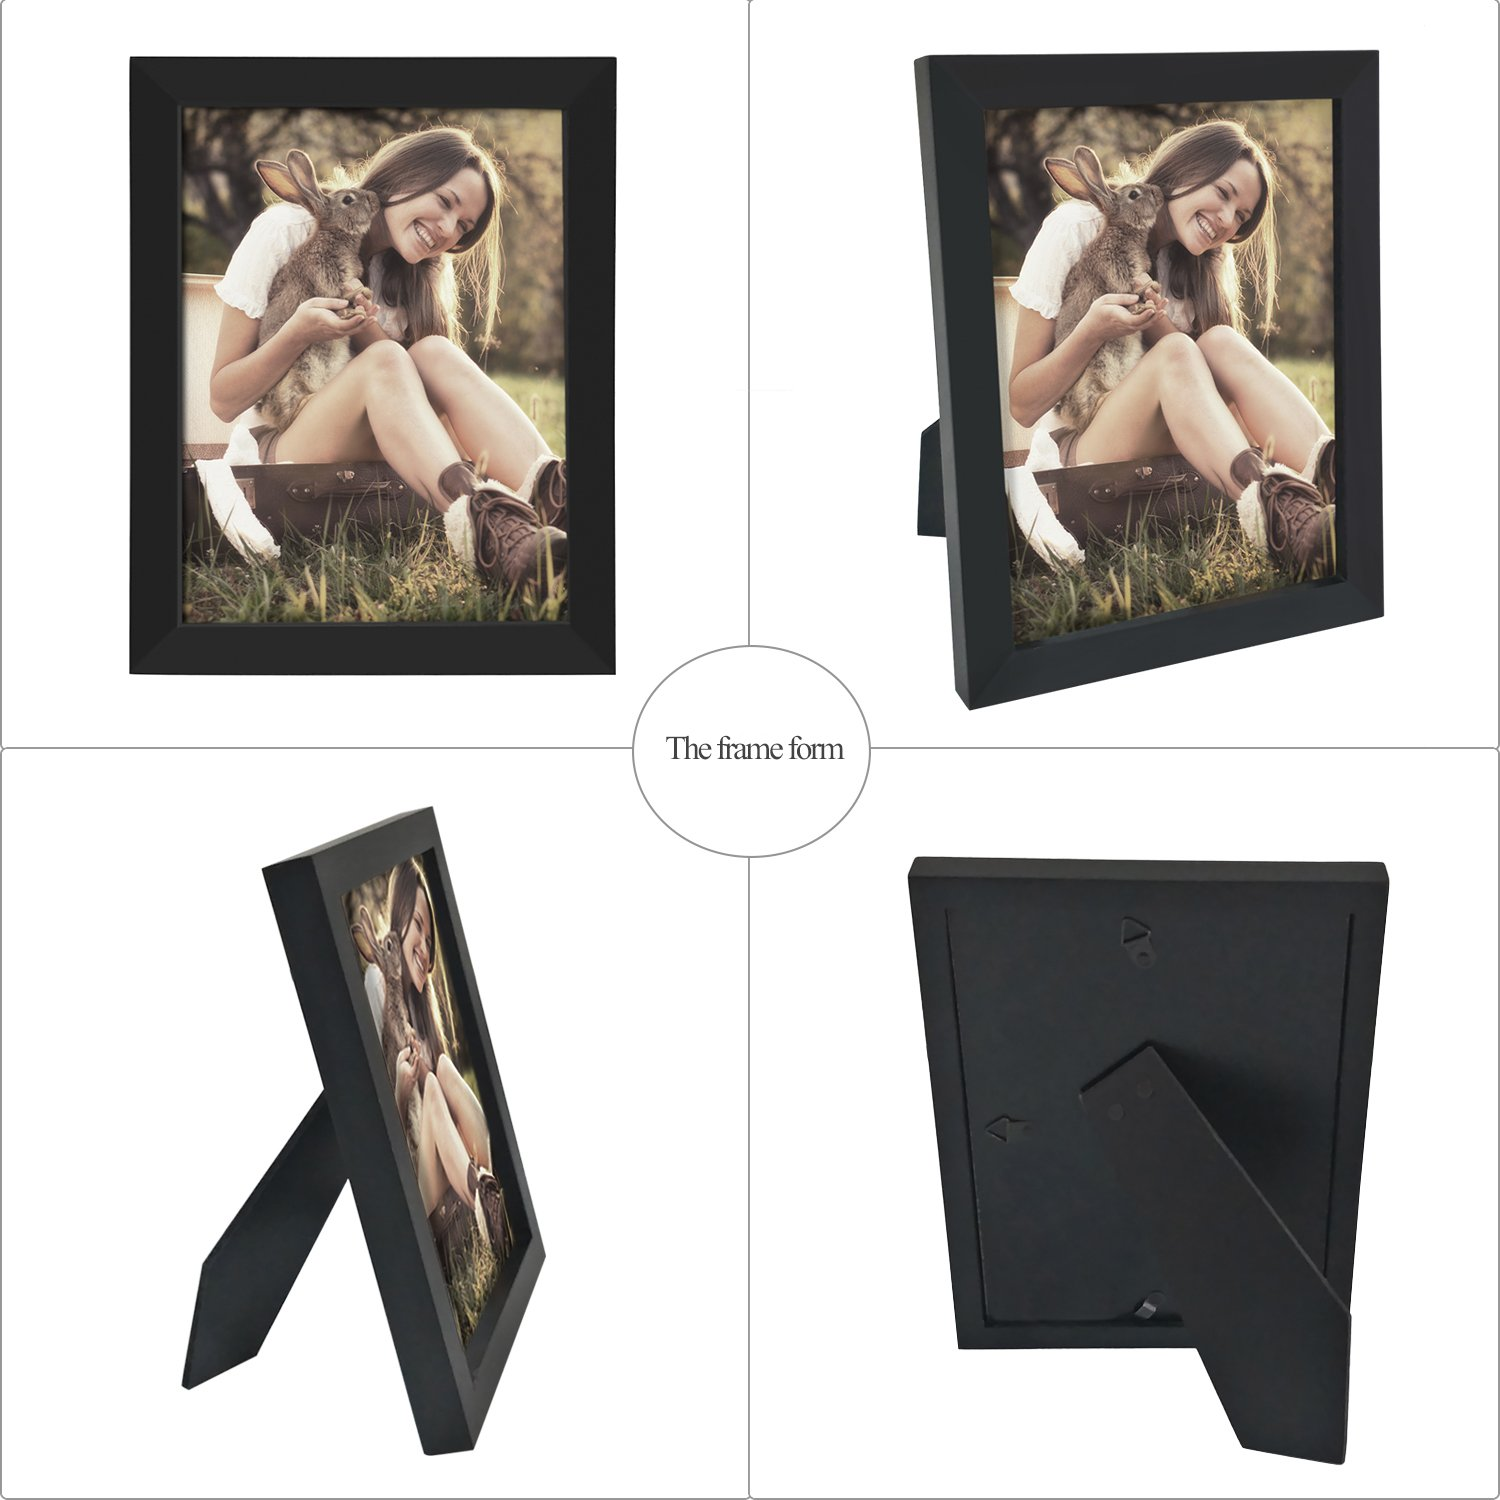 Adeco Decorative Black Wood Collage Picture Photo Frame for Wall Hanging or Table Top 6 x 8-Inch PF0053-2